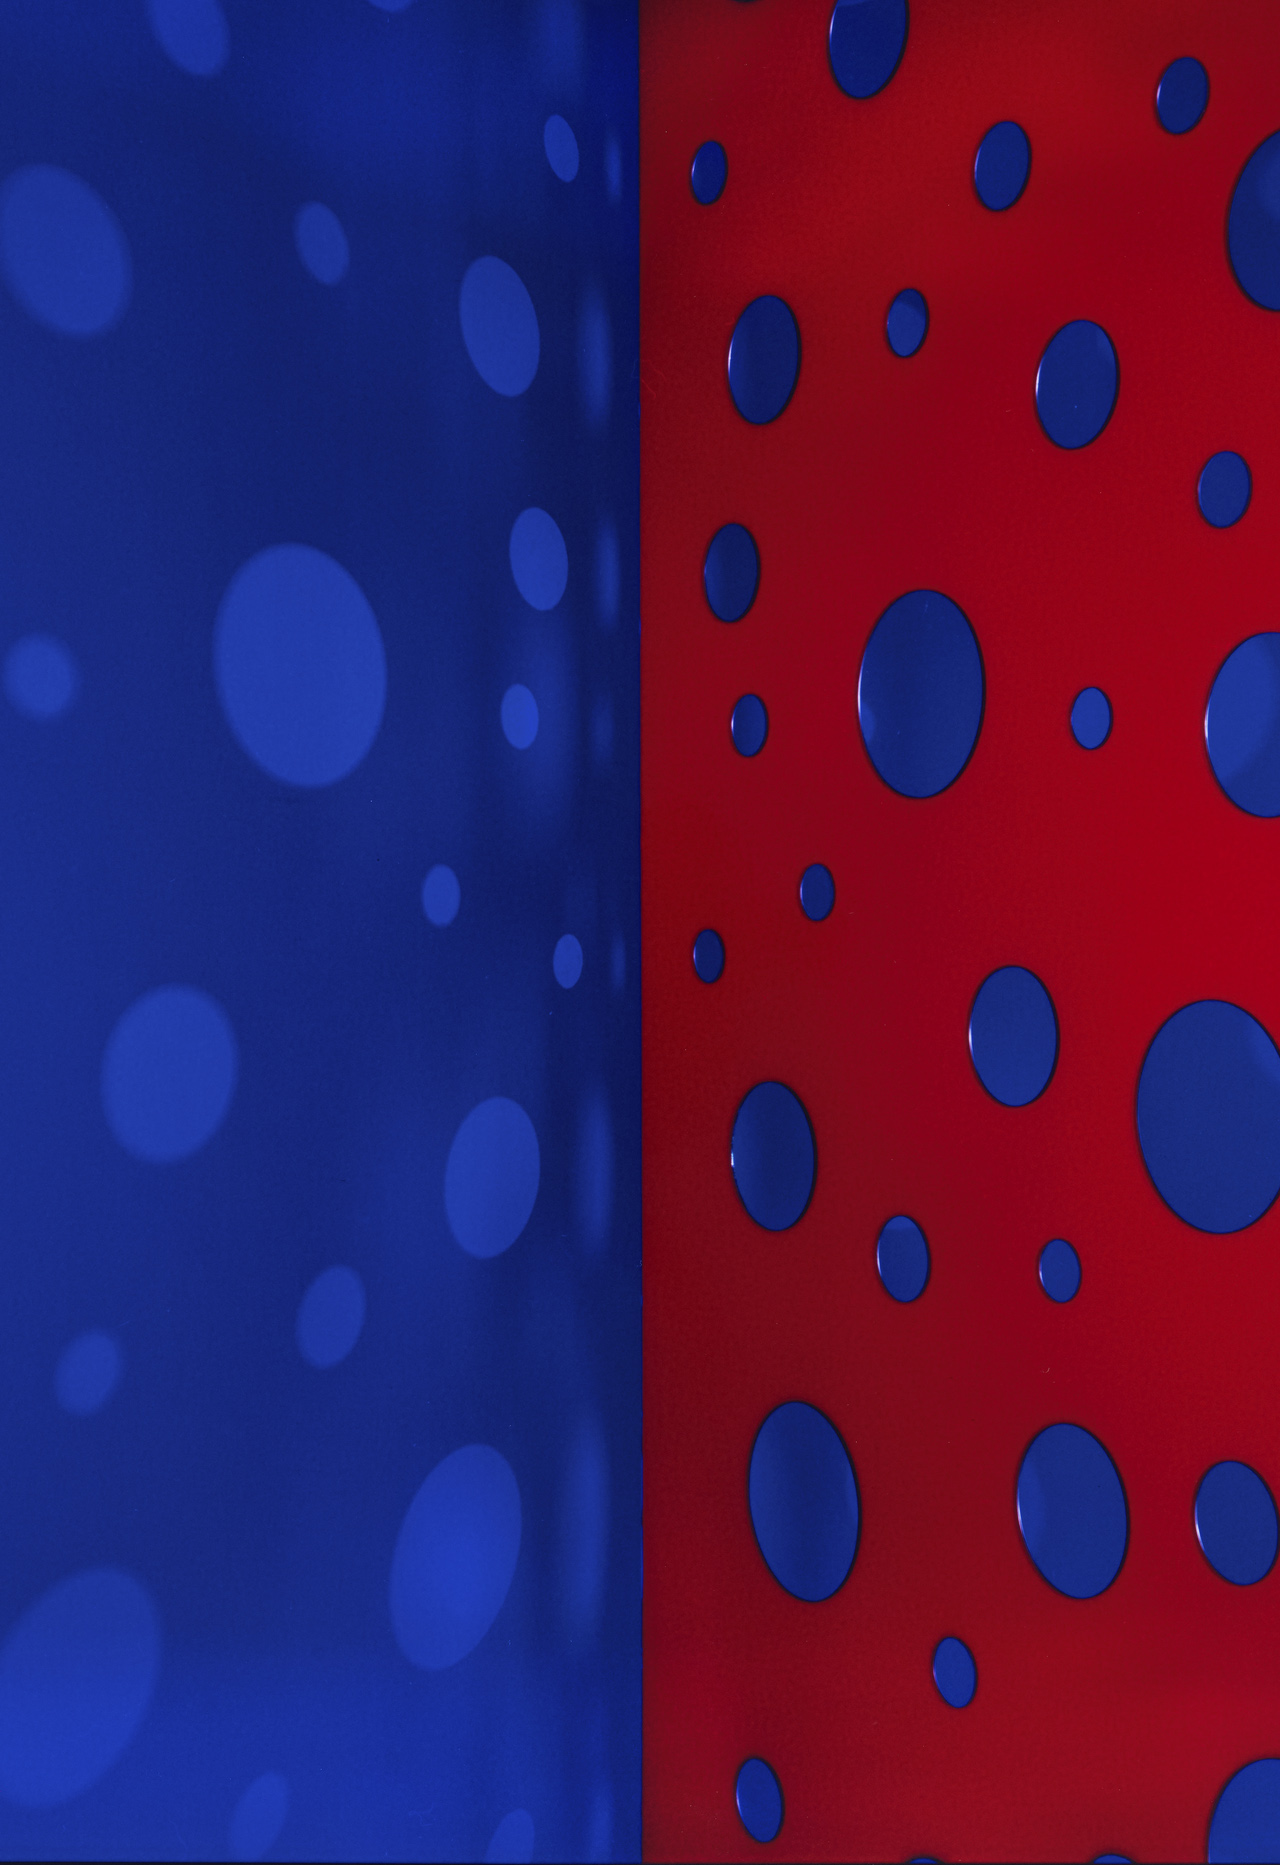 JACKY REDGATE   Light Throw (Mirrors) Fold - Blue-Purple and Red-Blue  2019 Chromogenic photograph handprinted 185 x 127 cm